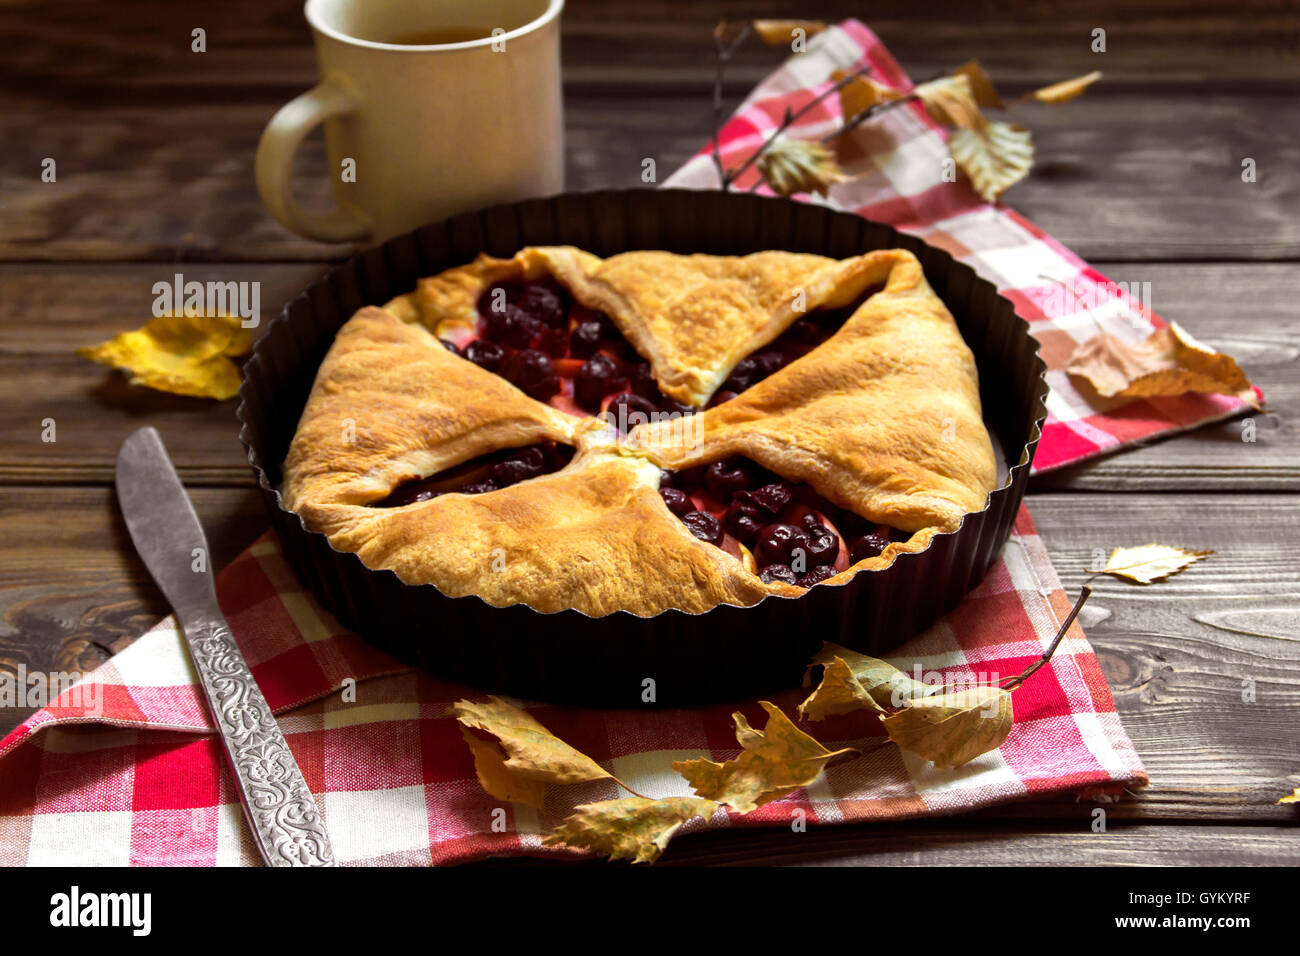 Homemade cherry and apple pie over rustic wooden background with yellow leaves, copy space - delicious autumn pastry - Stock Image